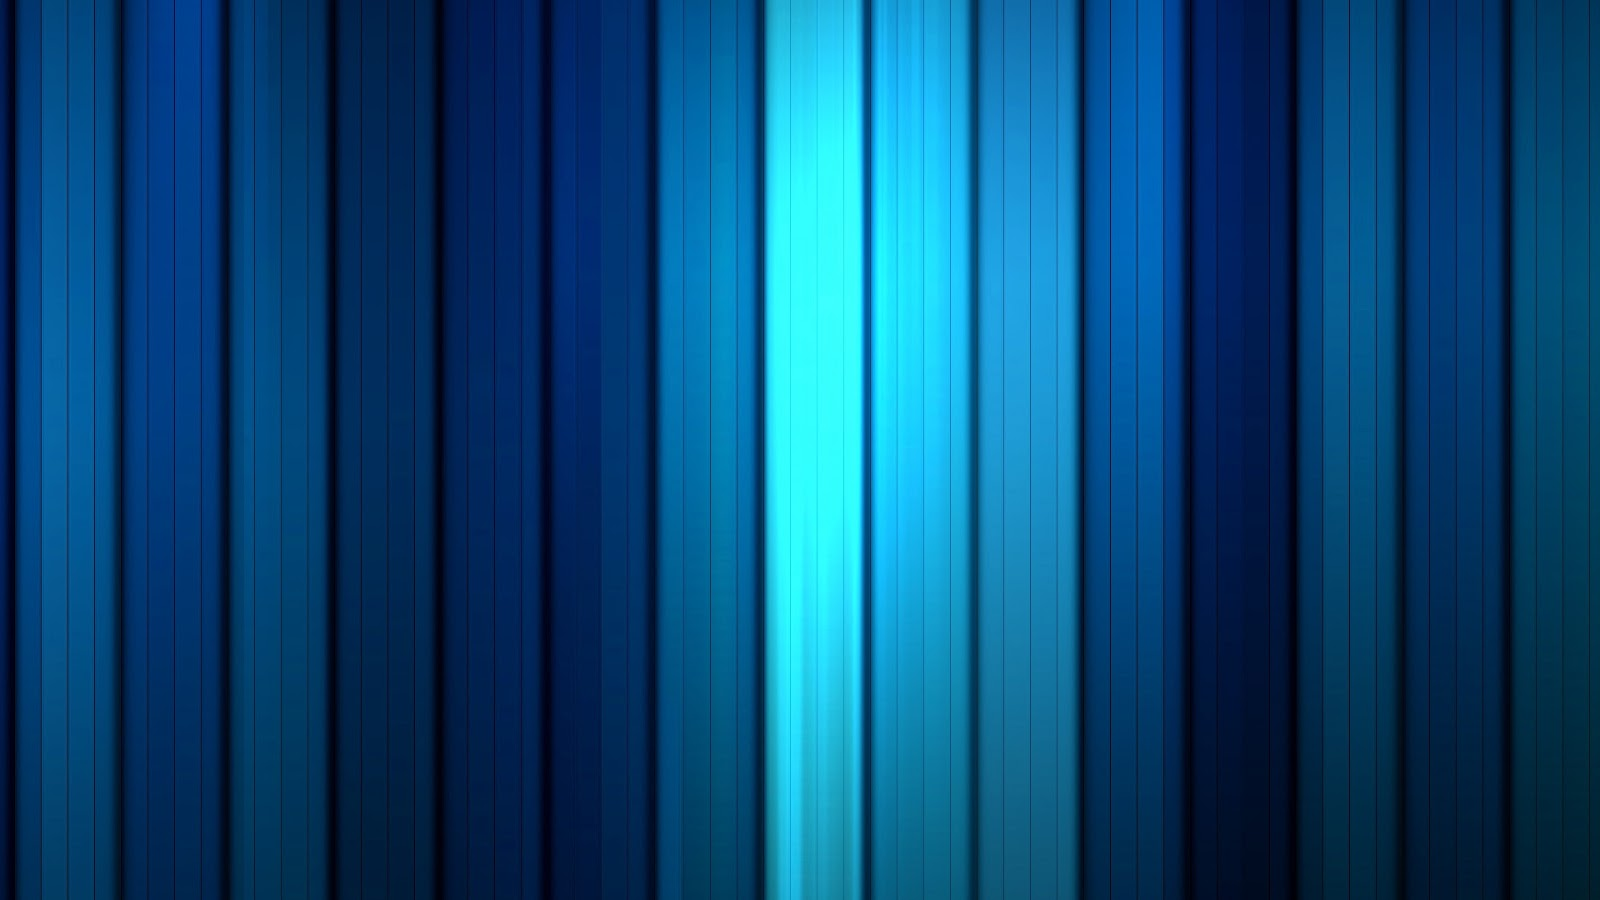 Abstract Full Hd Wallpapers 1080p Hd Wallpapers High